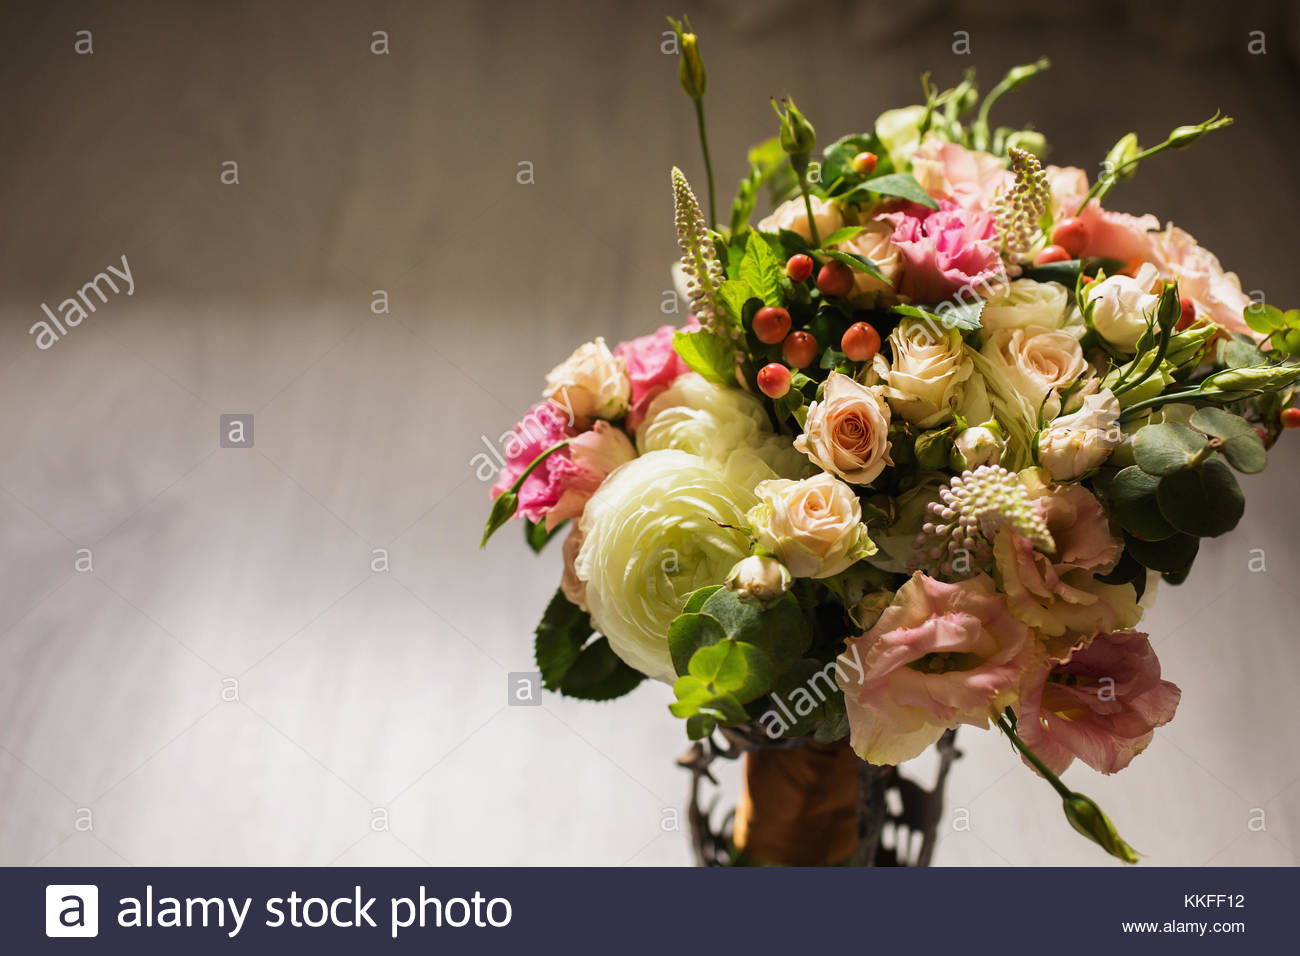 Wedding Bouquet Of White Red And Pink Flowers In A Vintage Vase